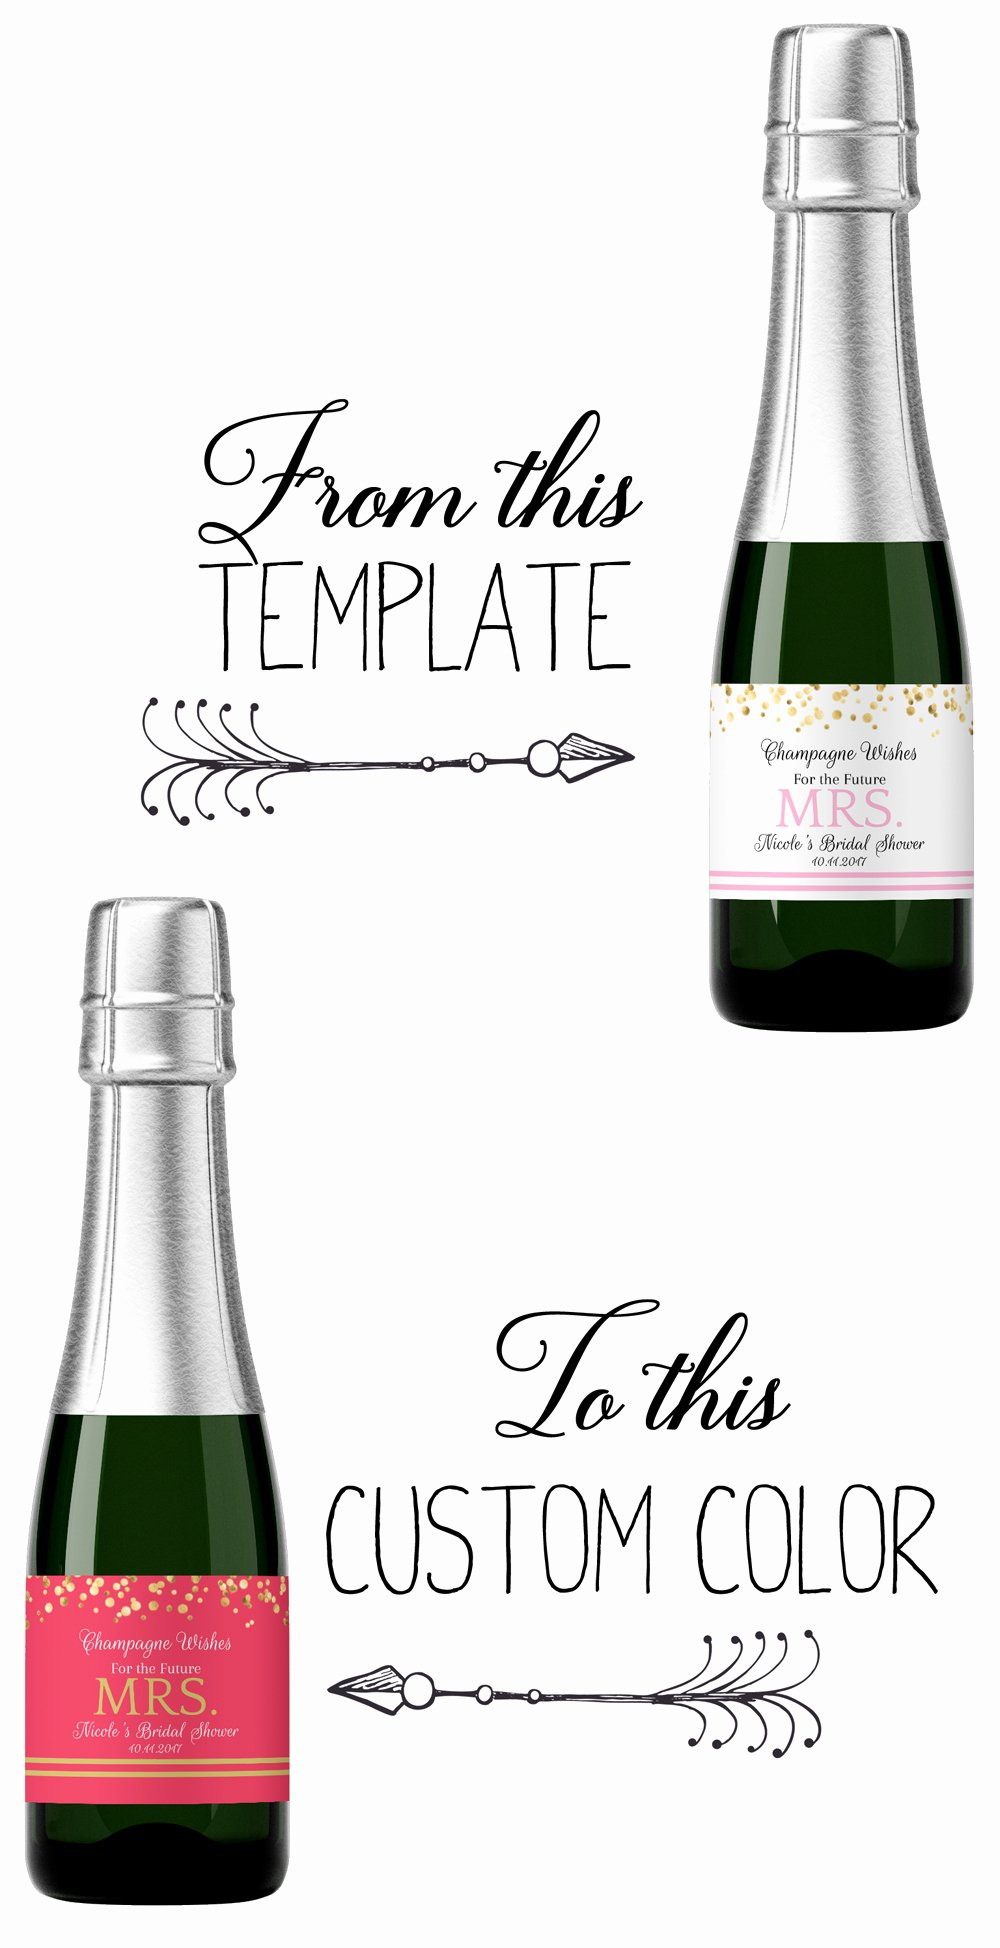 Champagne Bottle Label Template Awesome How to Make A Custom Label From A Template Step by Step Guide